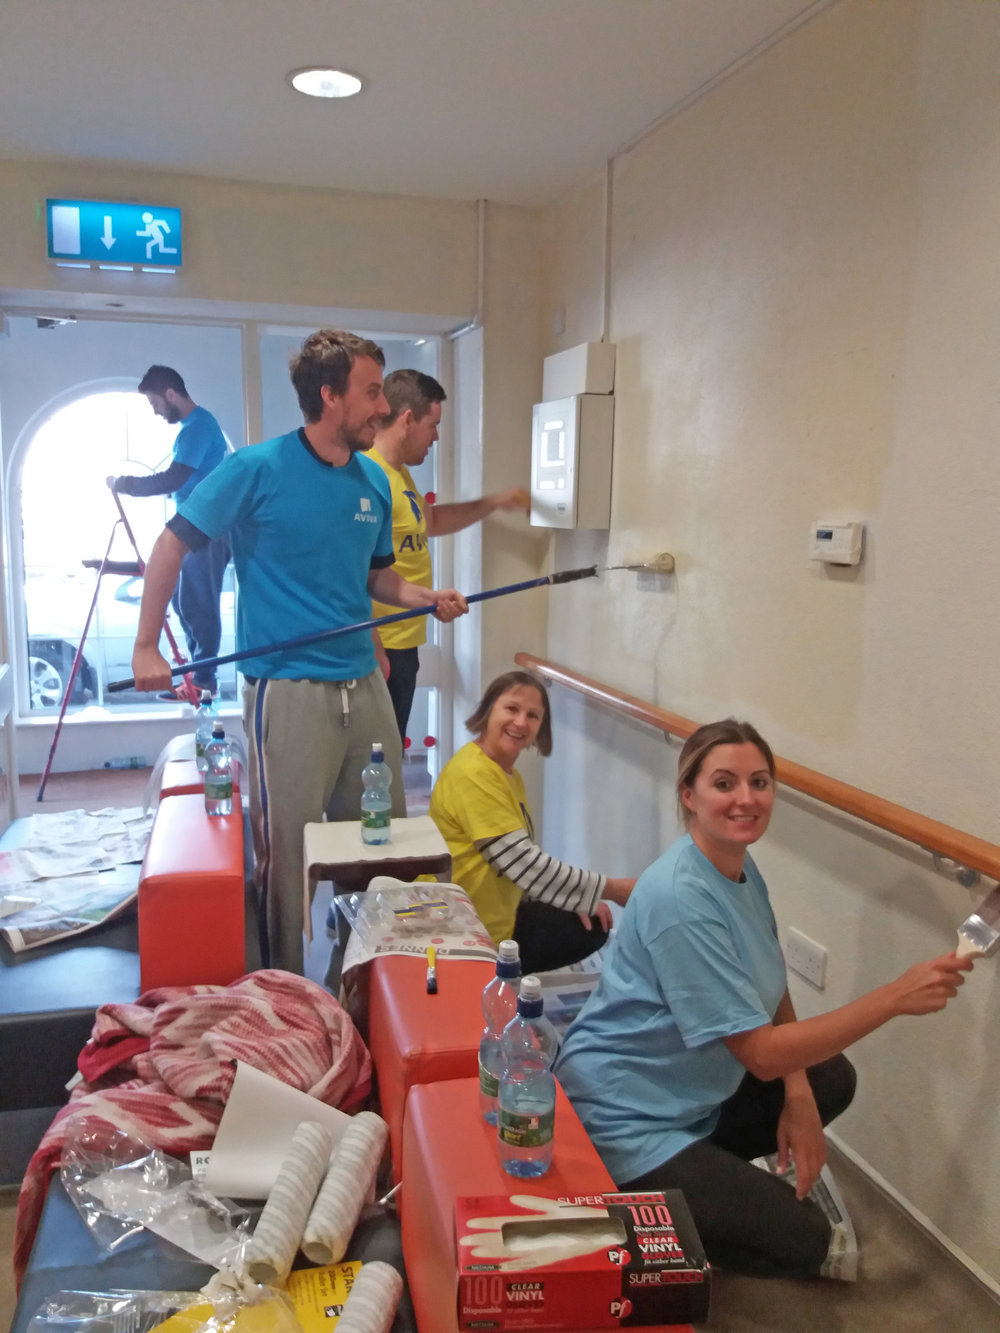 Volunteers from Aviva Galway working alongside Ability West staff at Blackrock House Adult Day Service. Other companies which have taken part in our Corporate Volunteering Programme include Medtronic Mervue and PwC.